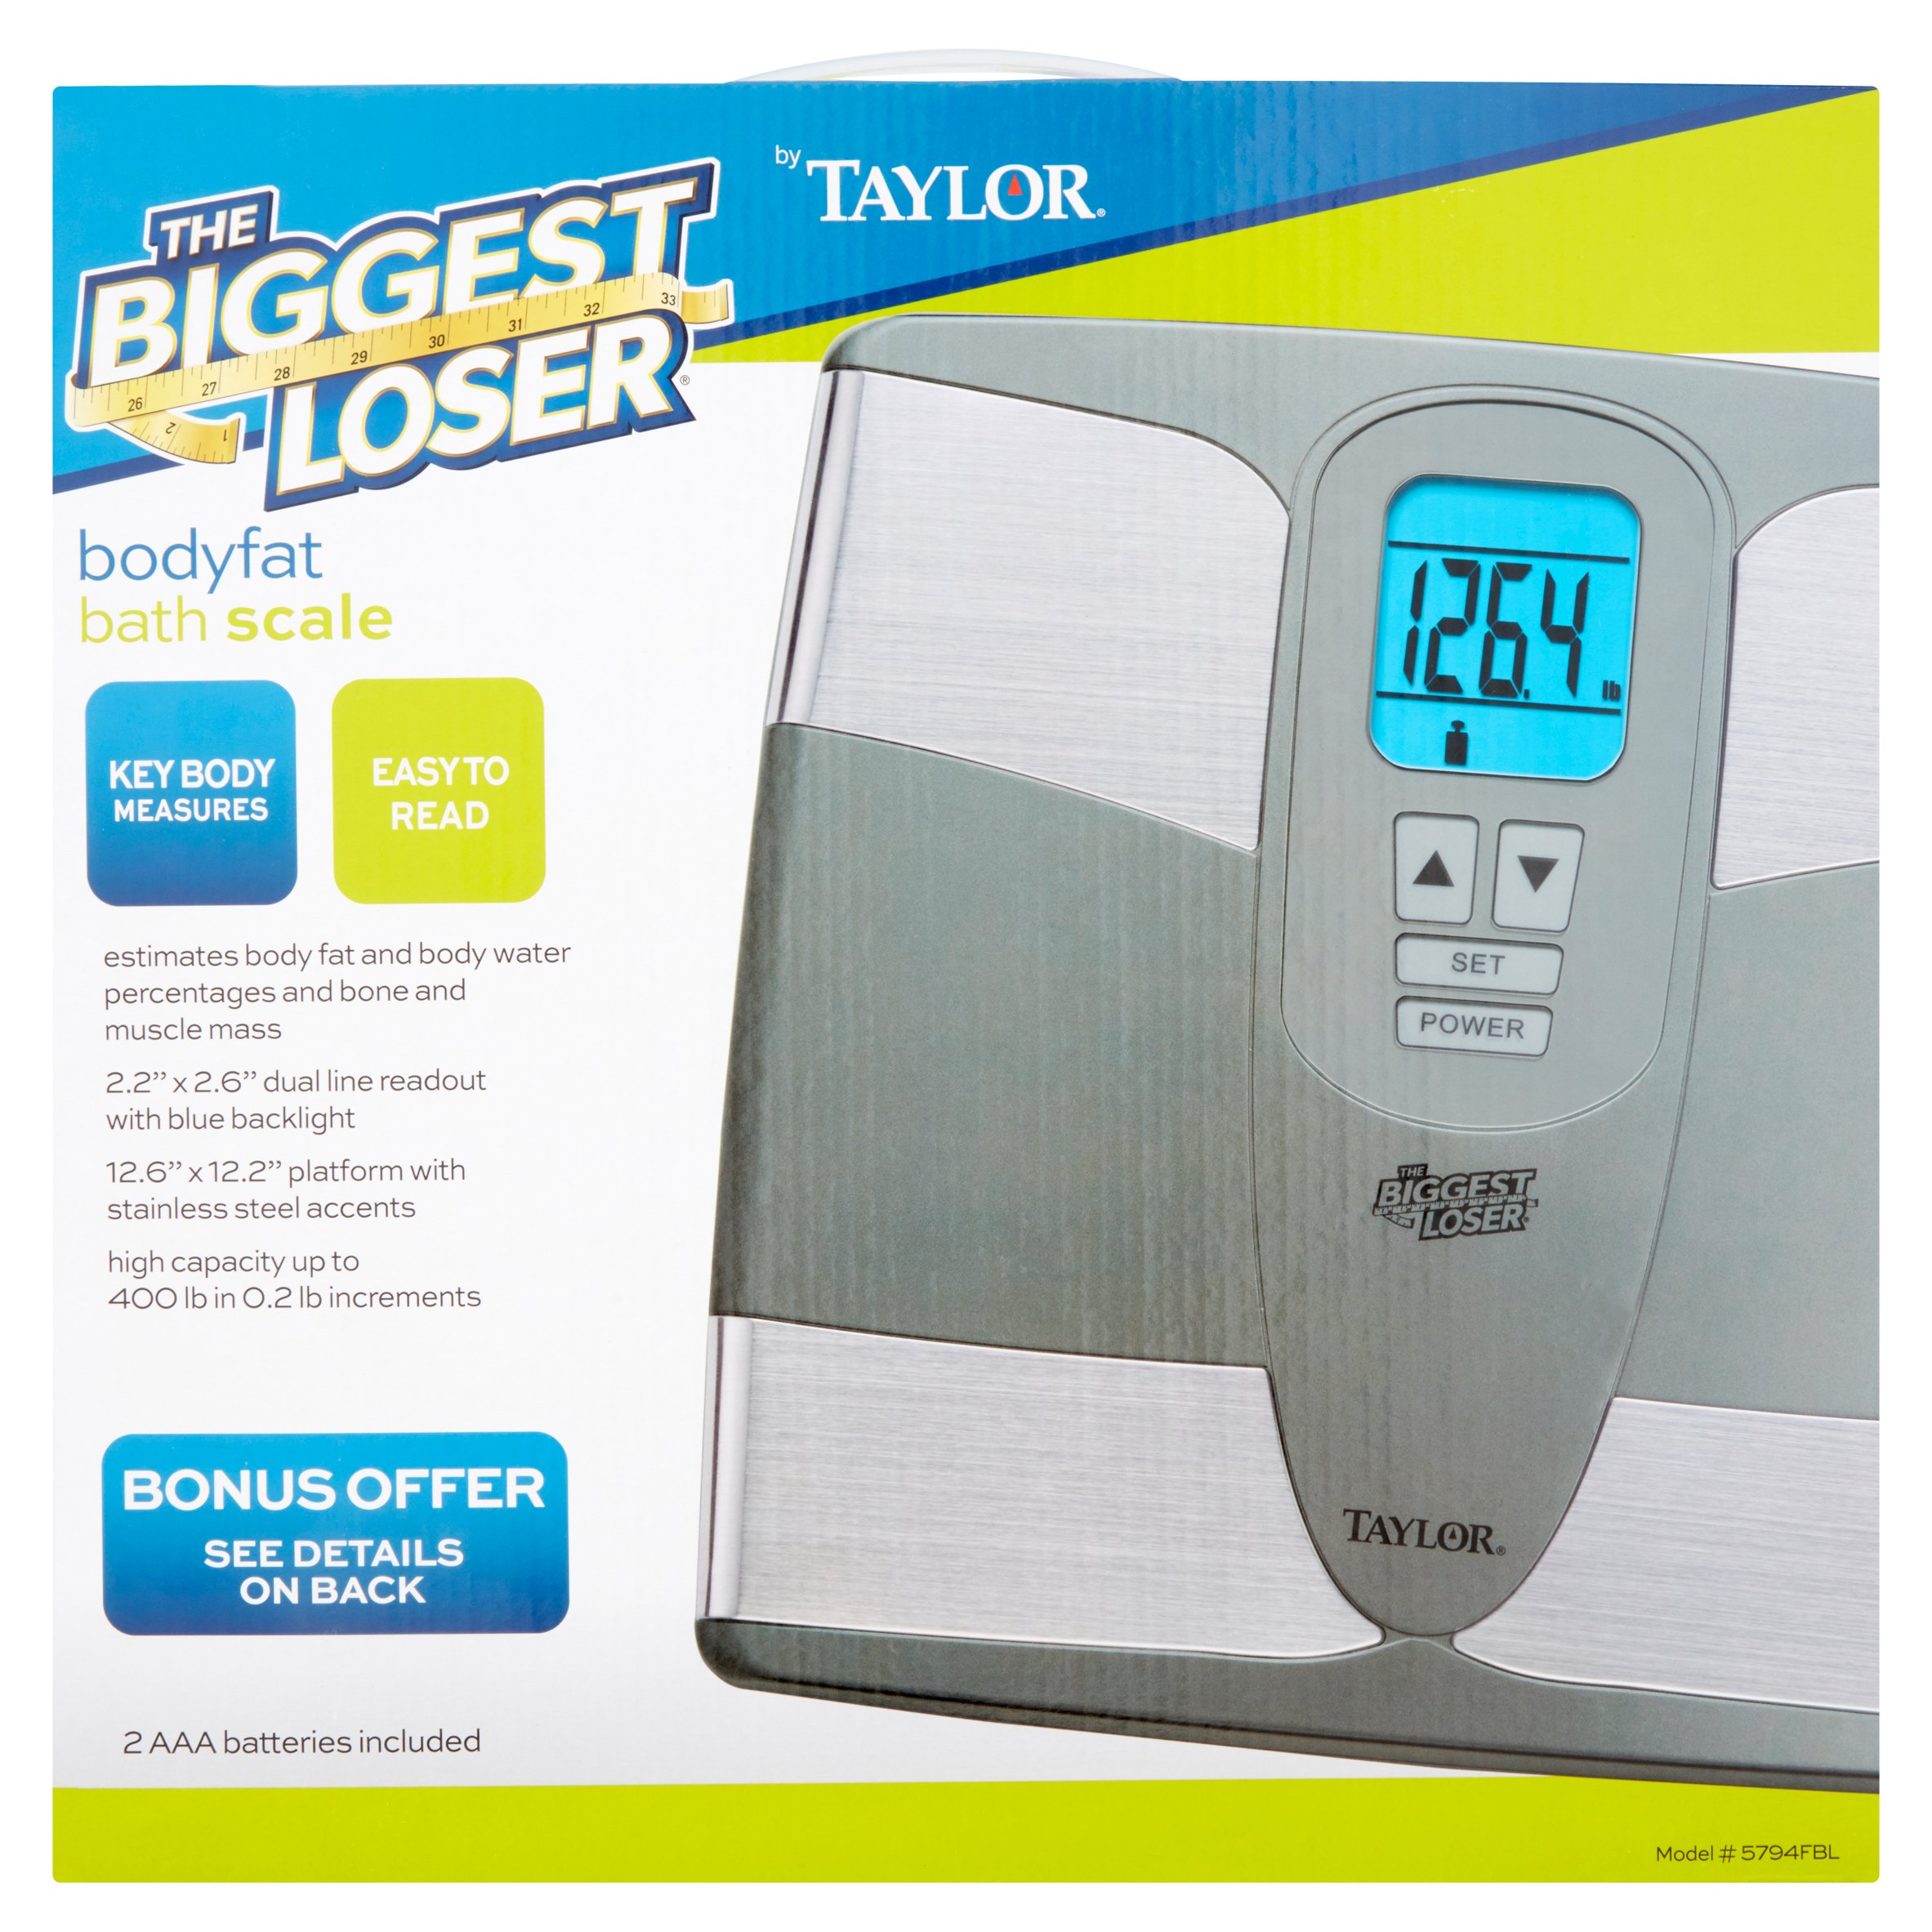 Taylor The Biggest Loser Bodyfat Bath Scale by Taylor Precision Products, Inc.